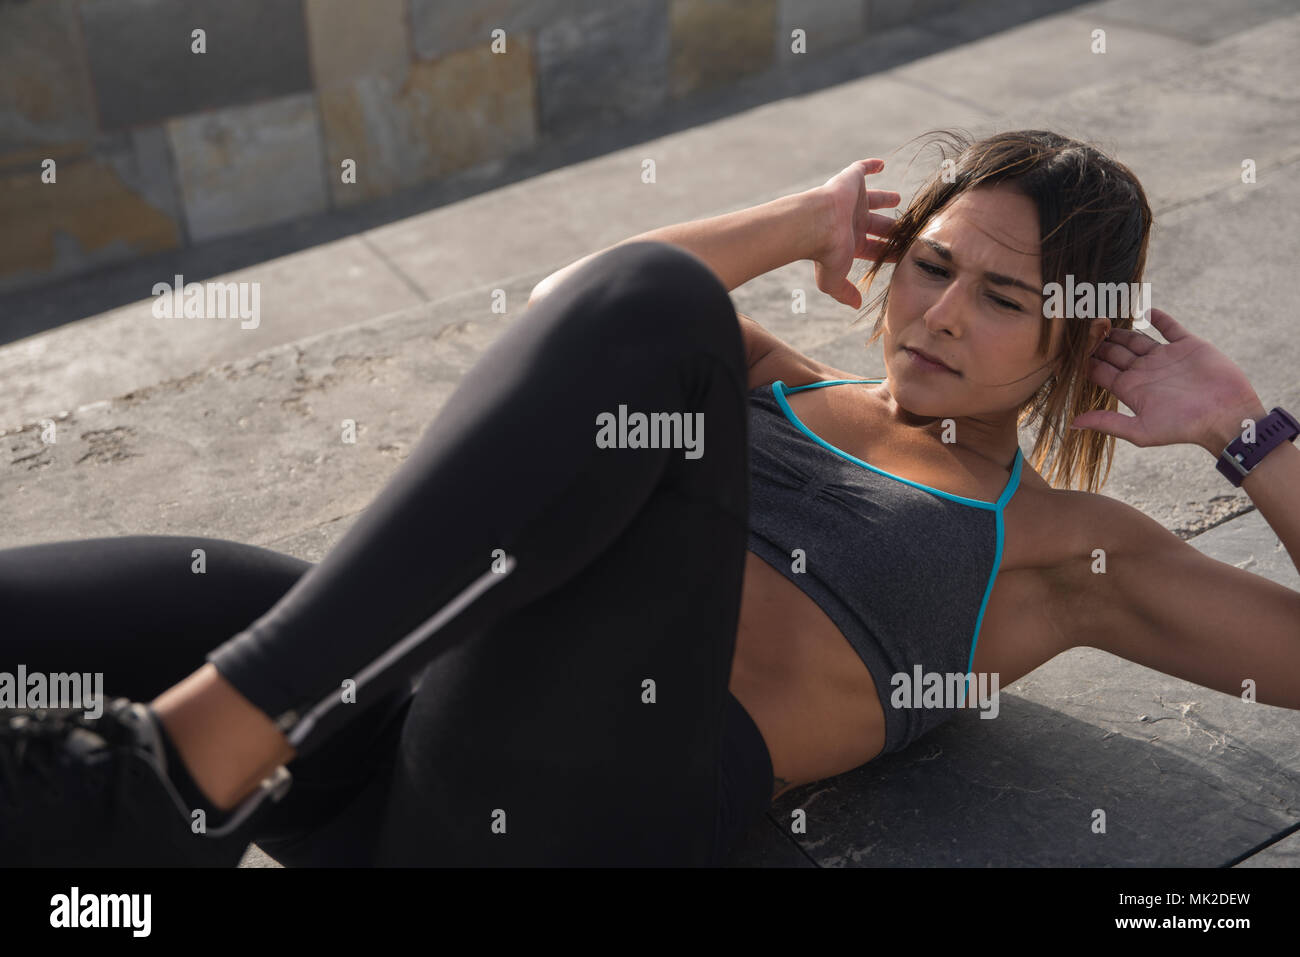 Young fit brunette exercising outside in the sun in black tights, a grey sports vest and black sneakers - Stock Image